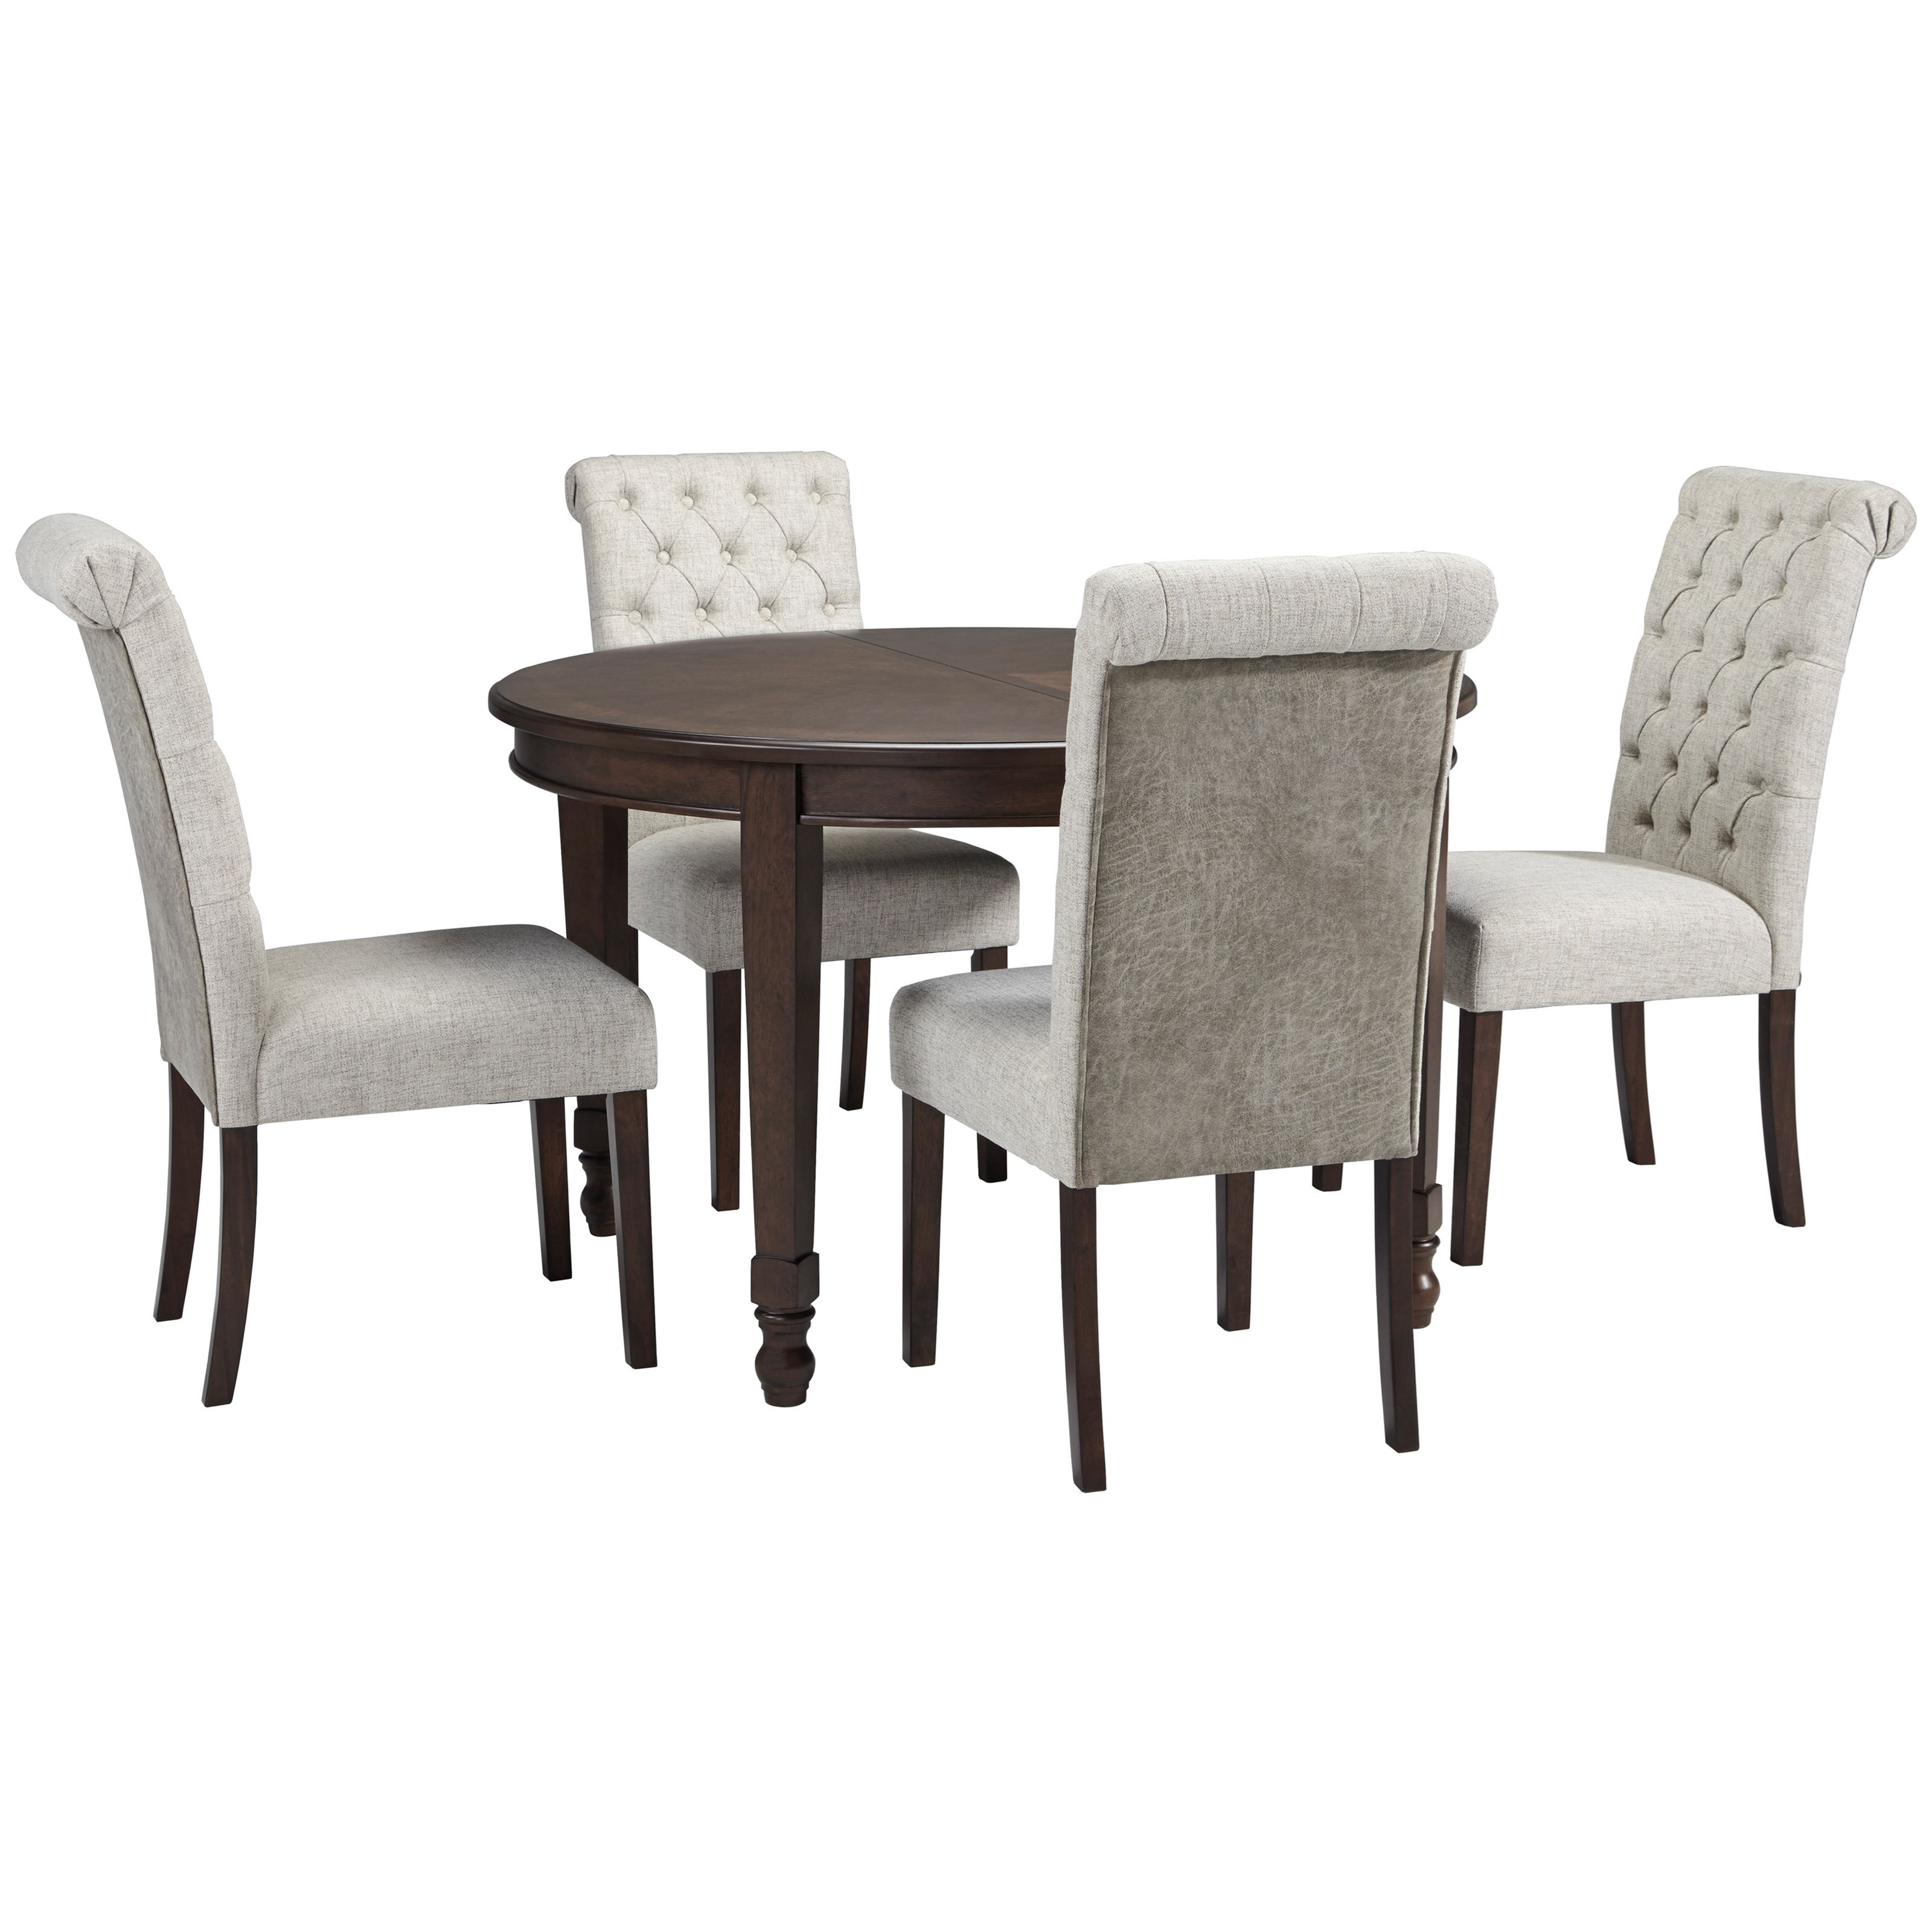 Adinton 5-Piece Table and Chair Set by Signature Design by Ashley at Houston's Yuma Furniture